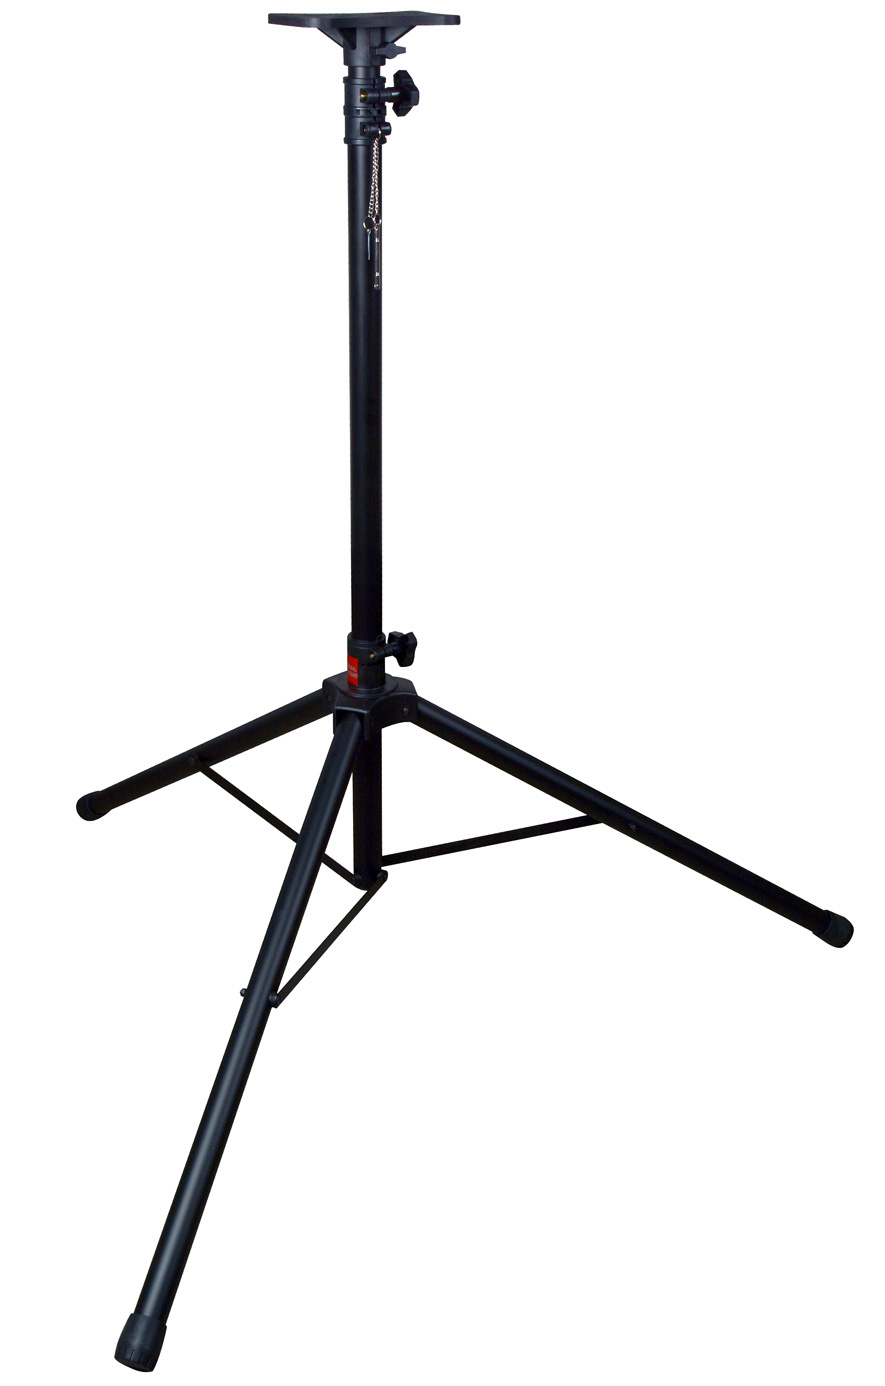 tripod speaker stand with speaker mounting plate and 1 3 8in tube. Black Bedroom Furniture Sets. Home Design Ideas